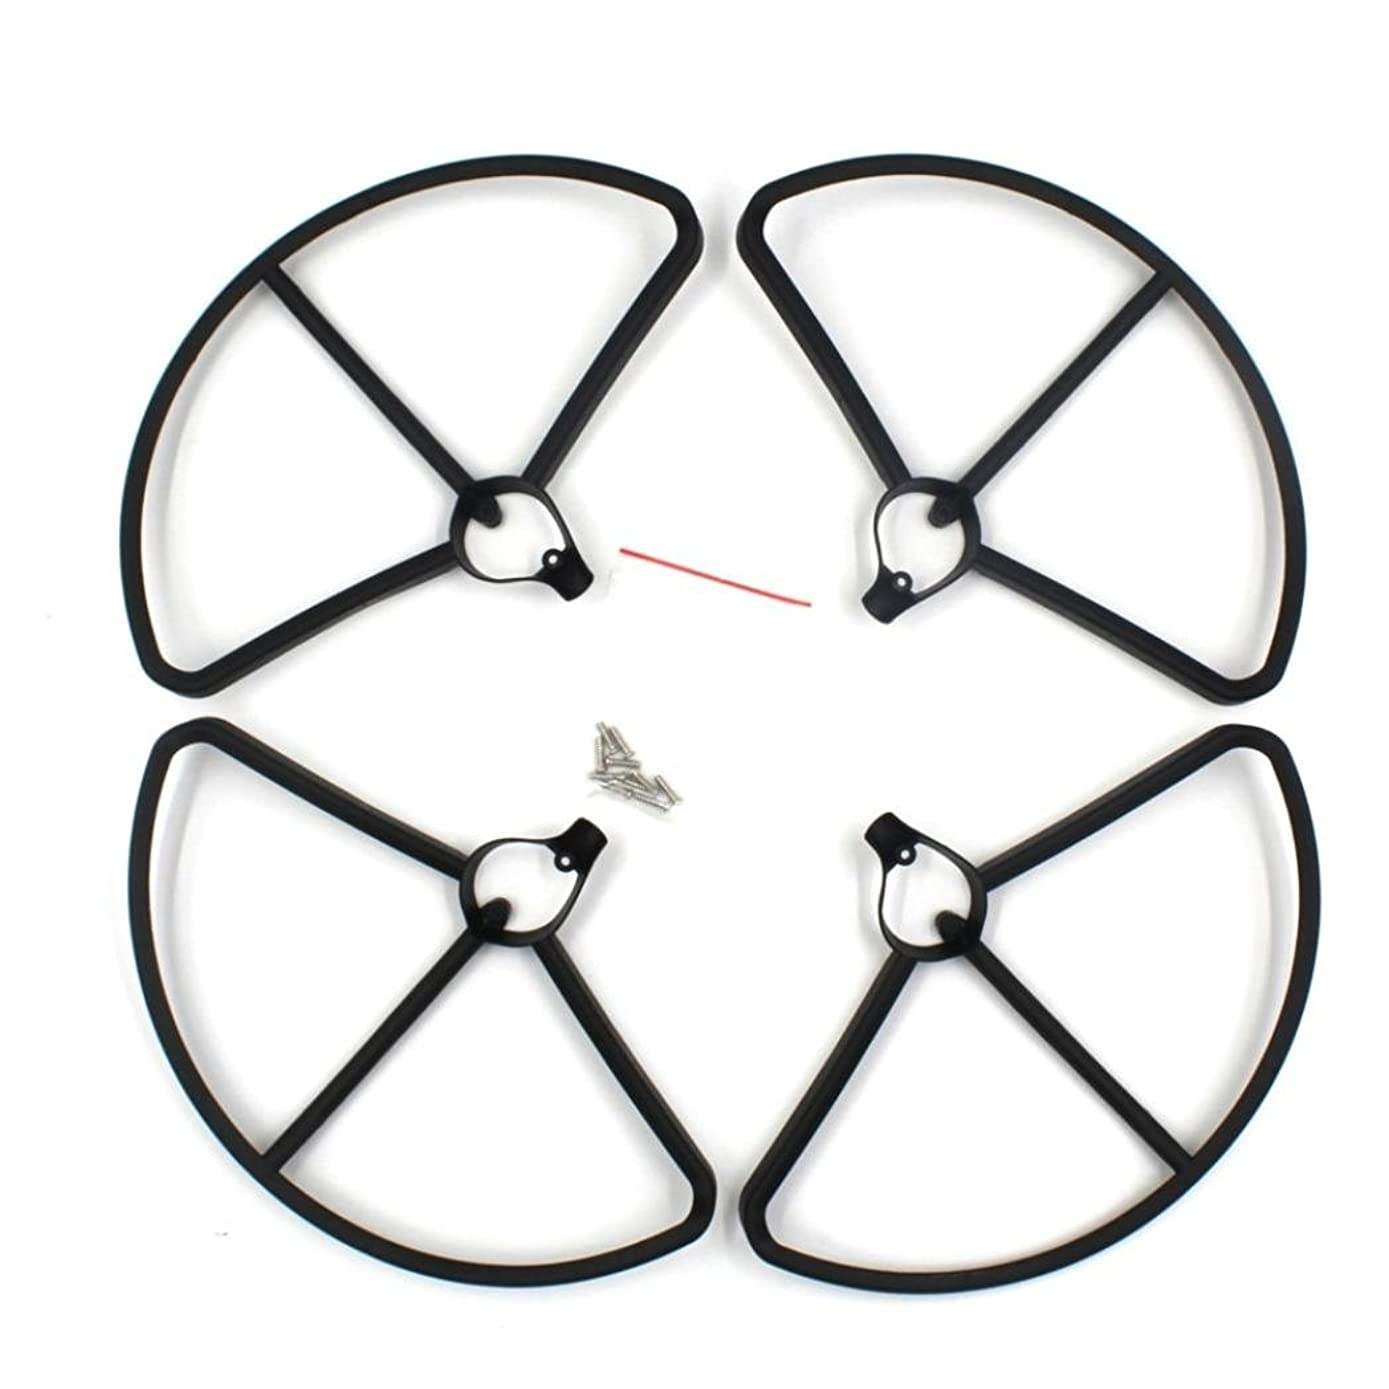 Rucan For Hubsan H501S X4 RC Quadcopter Propeller Protector Protection Frame Cover (A)